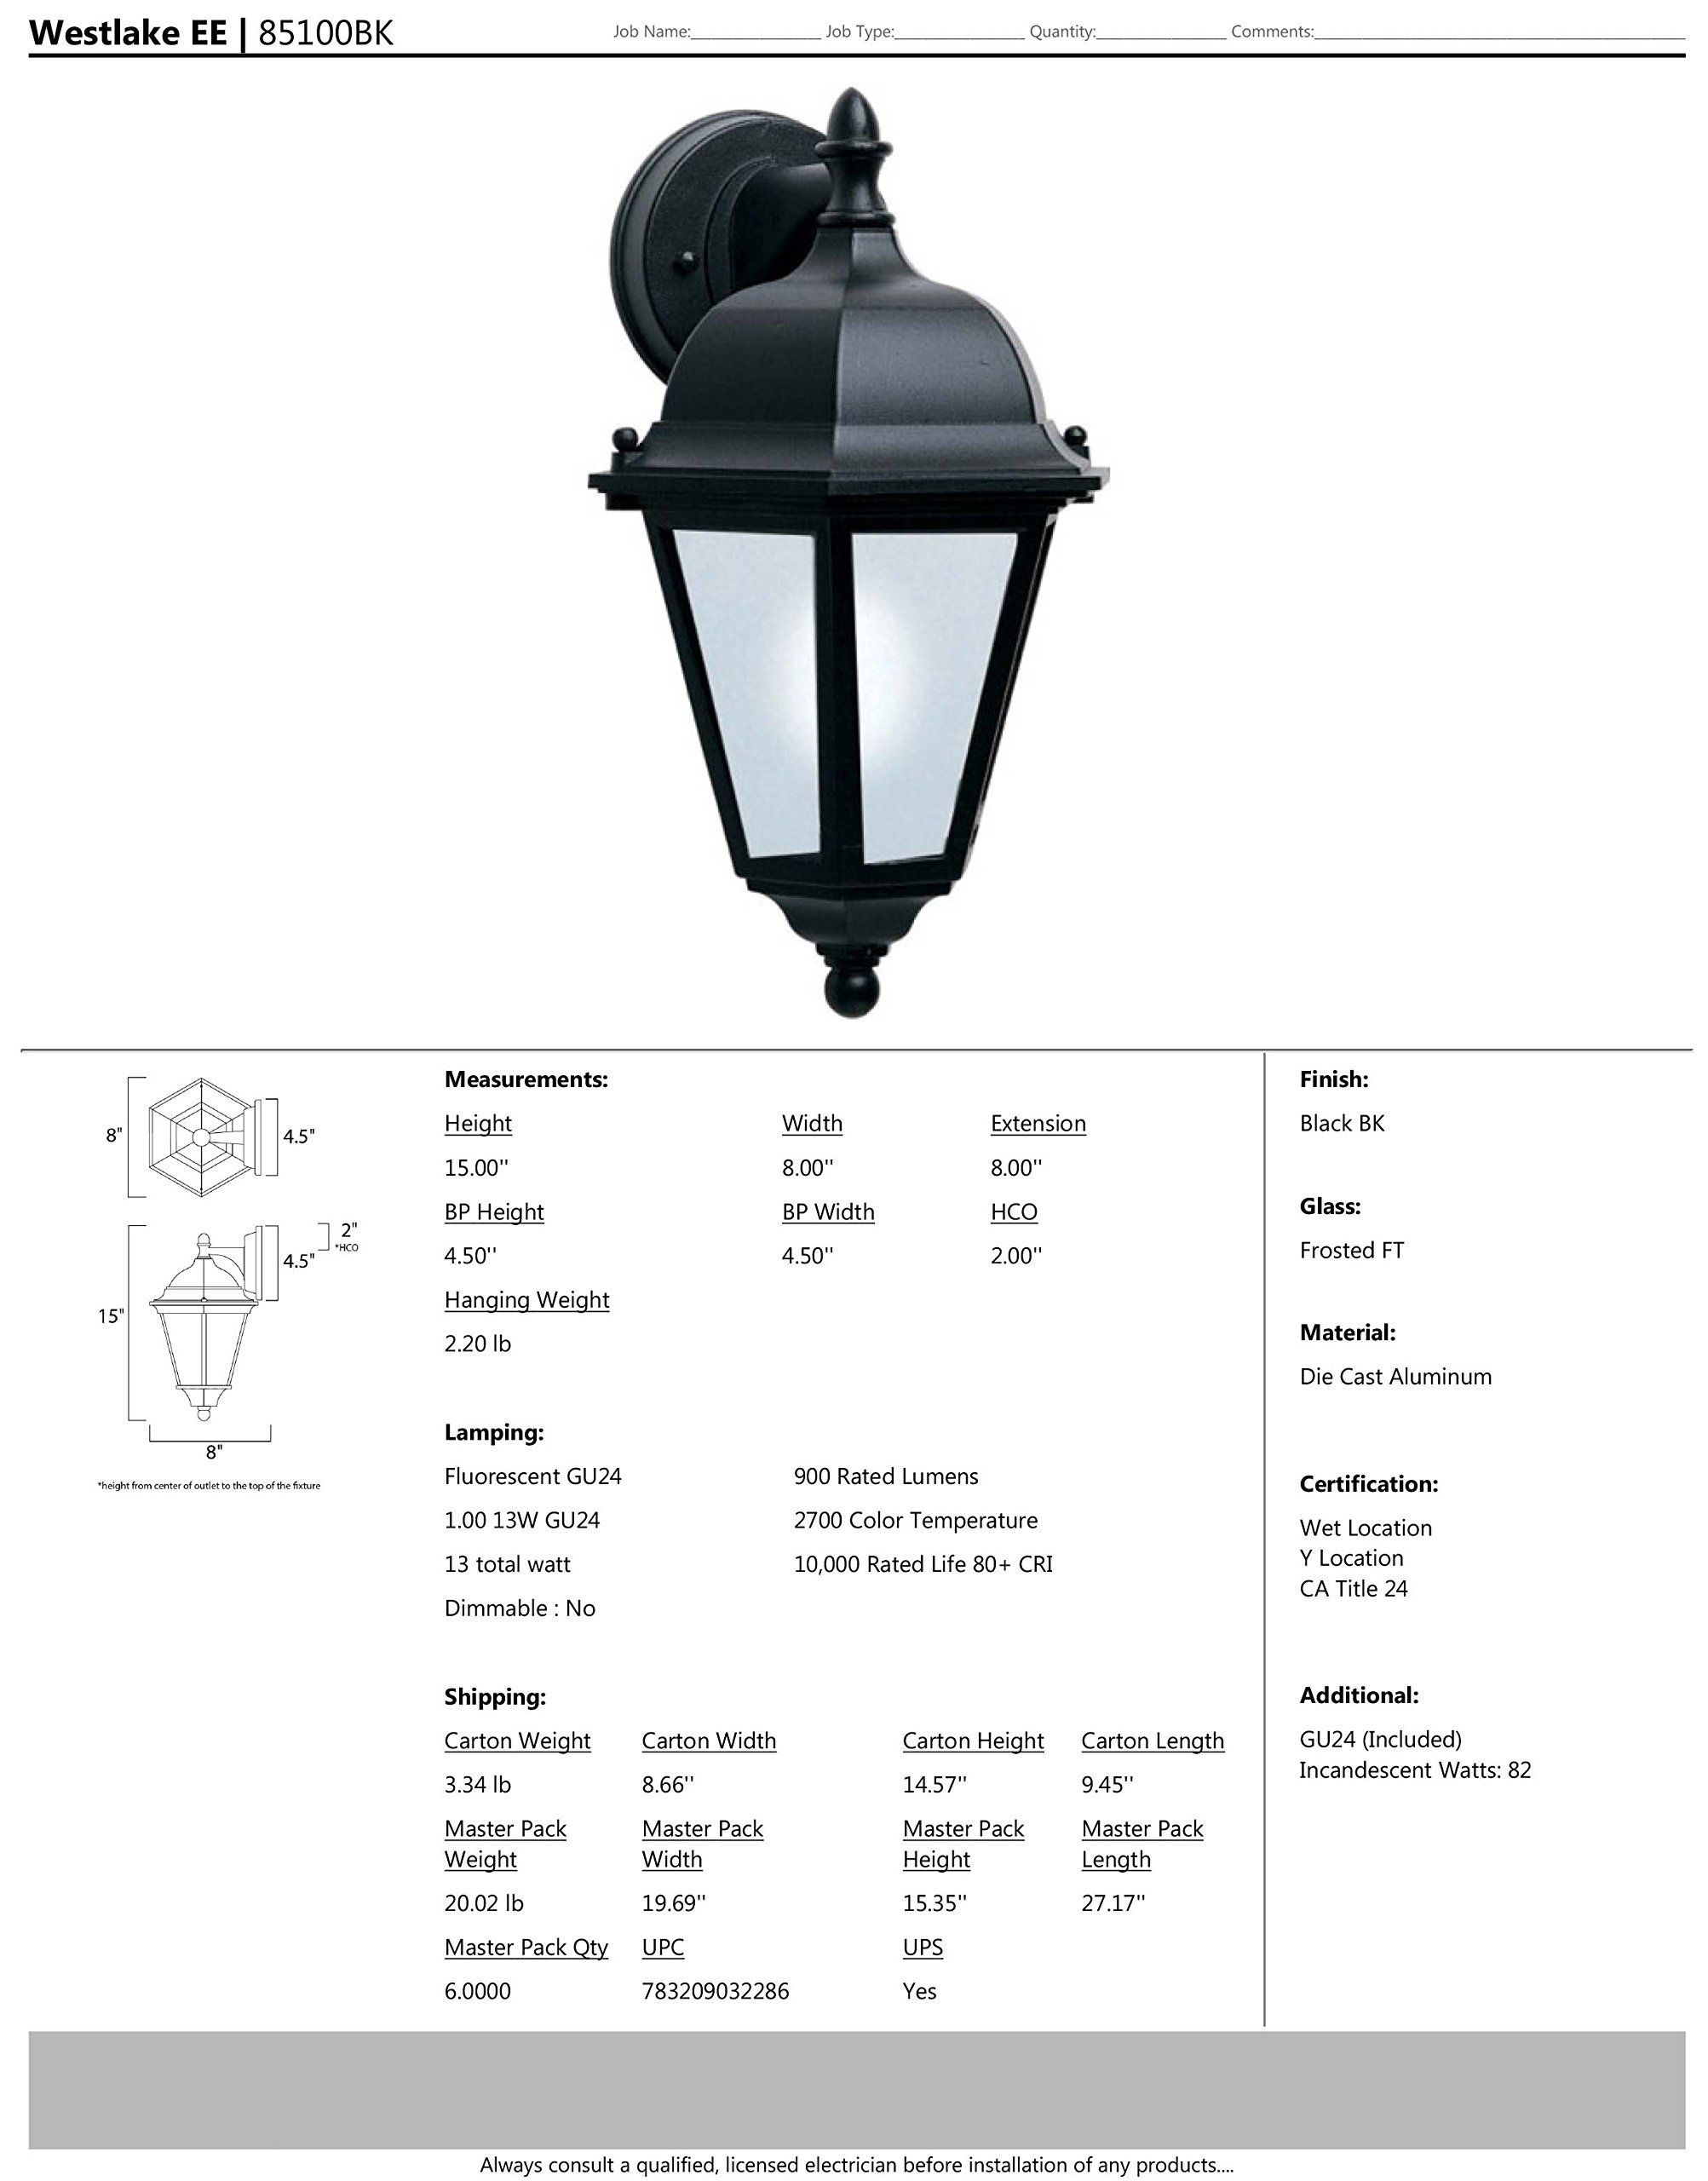 Maxim 85100BK Westlake EE 1-Light Outdoor Wall Lantern, Black Finish, Frosted Glass, GU24 Fluorescent Fluorescent Bulb , 60W Max., Wet Safety Rating, Standard Dimmable, Glass Shade Material, 1344 Rated Lumens